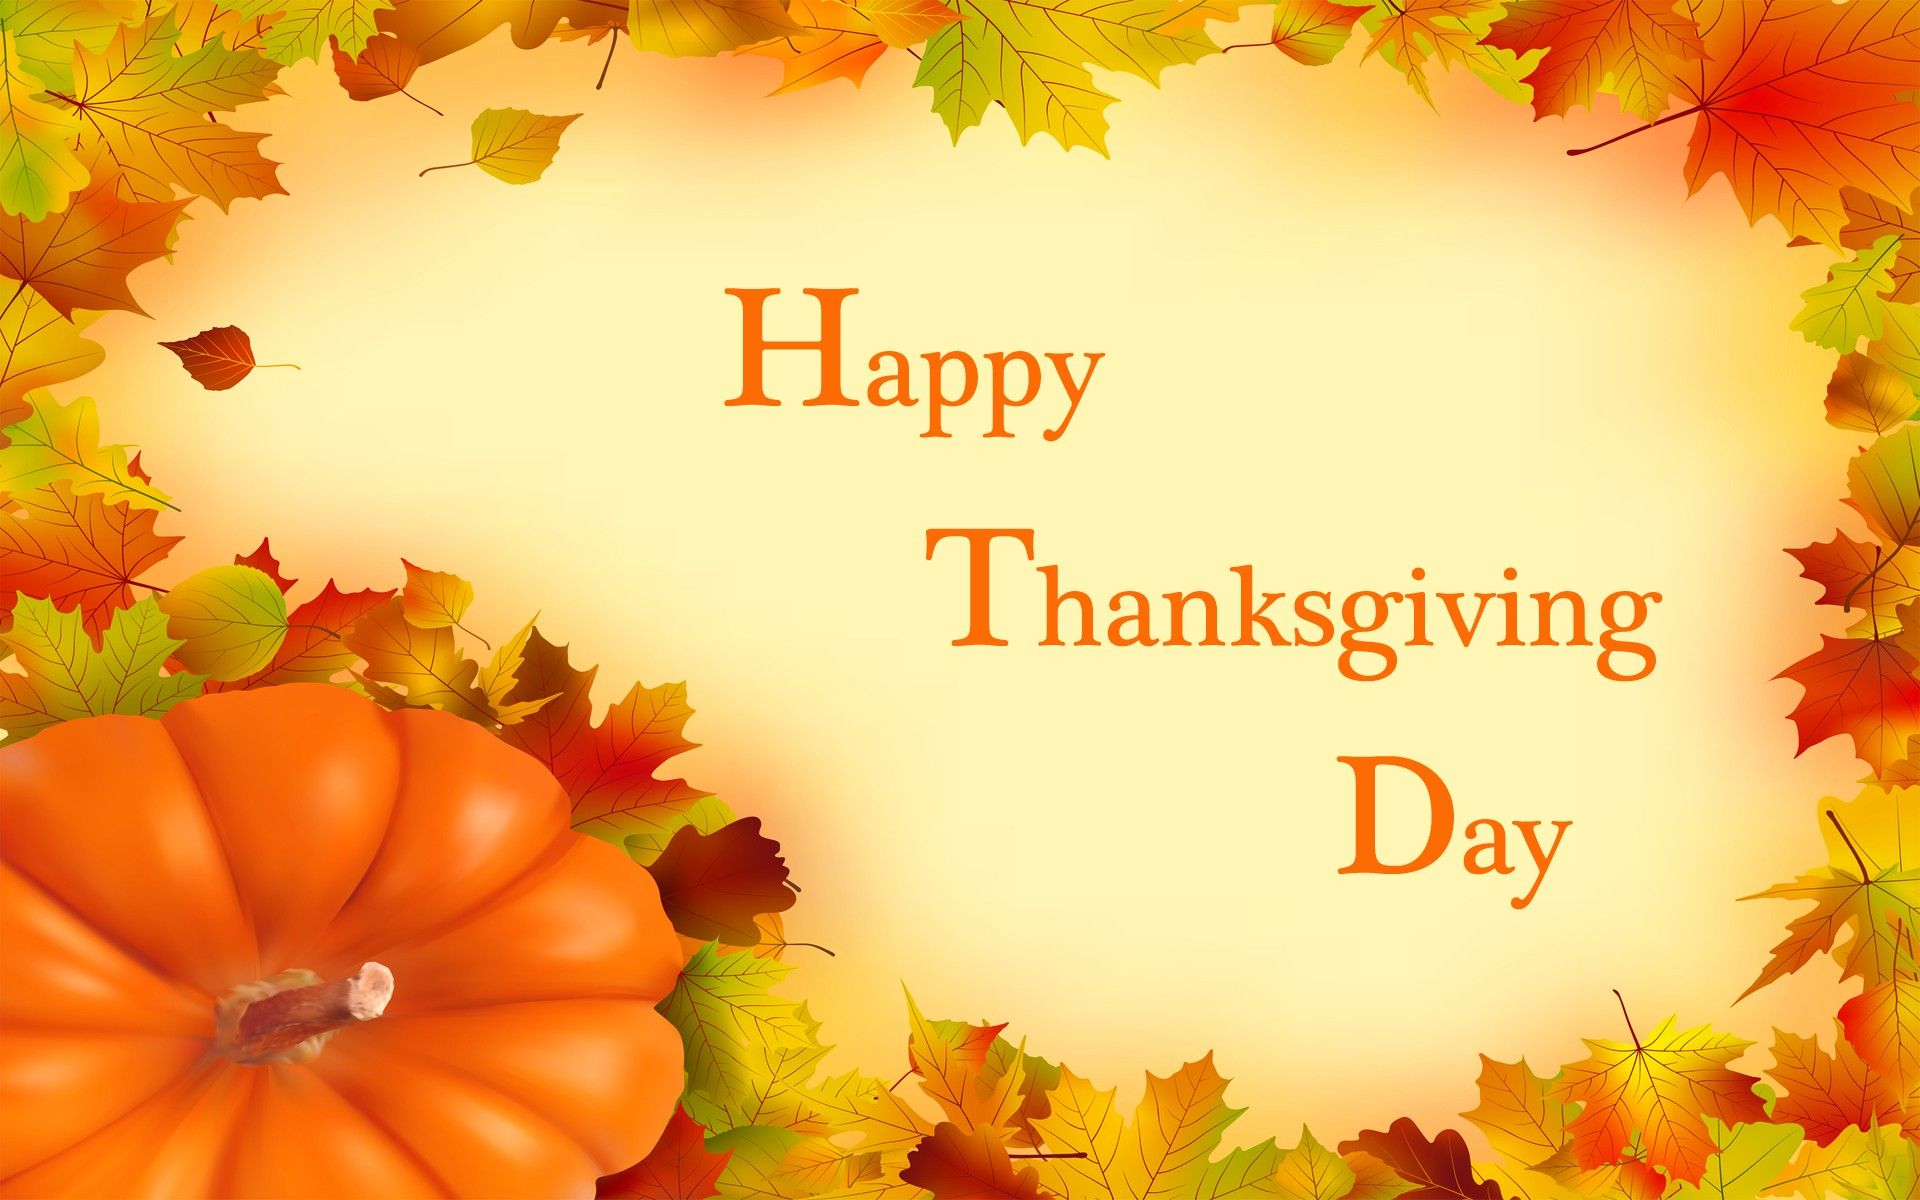 Happy Thanksgiving Day Wishes Hd Wallpaper A Day For Thanksgiving